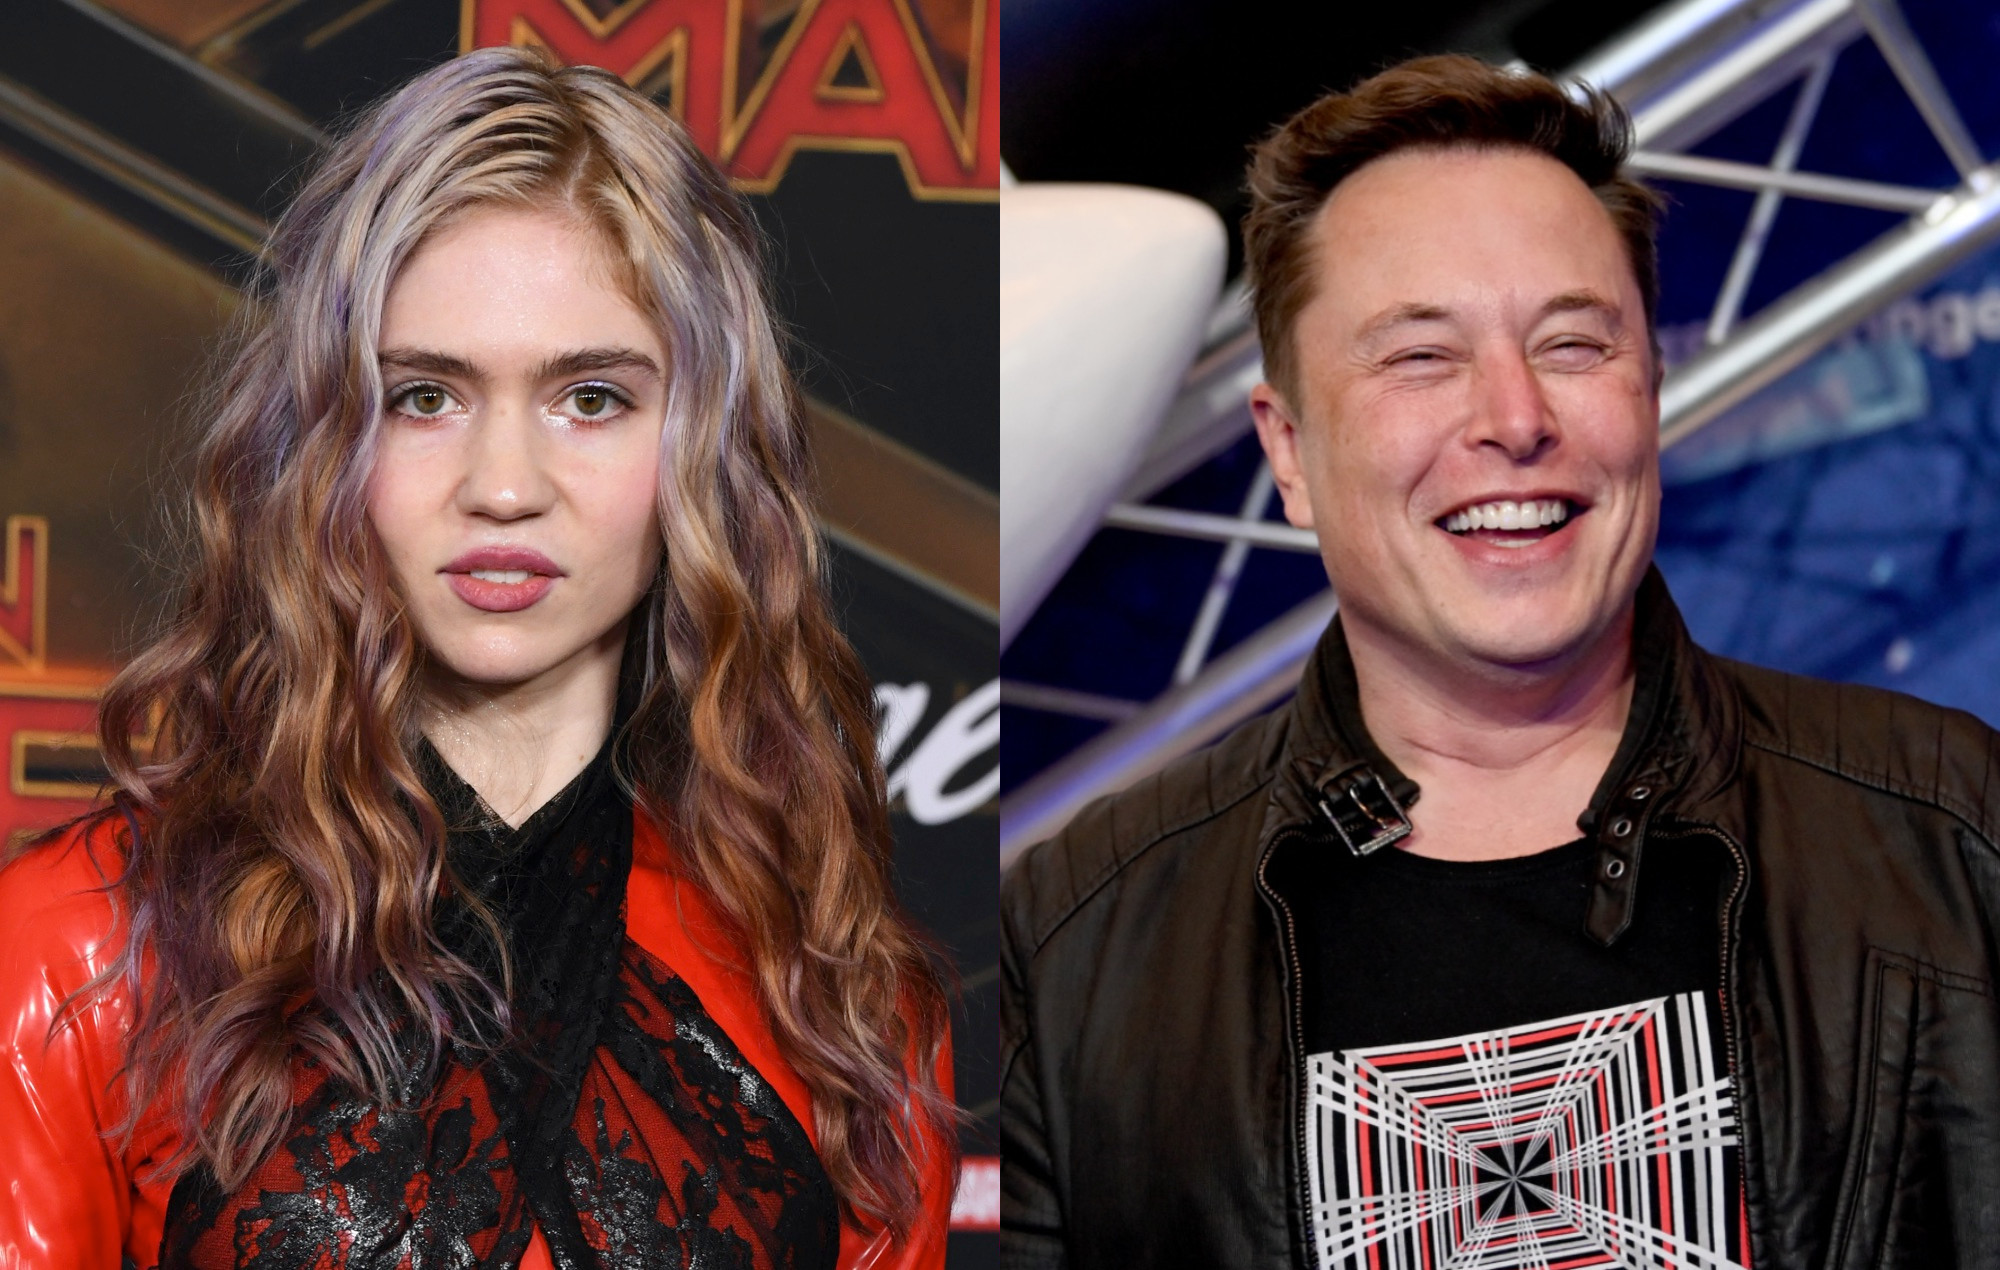 """Grimes takes to TikTok to defend Elon Musk again: """"I am not my bf's spokesperson"""" - NME"""